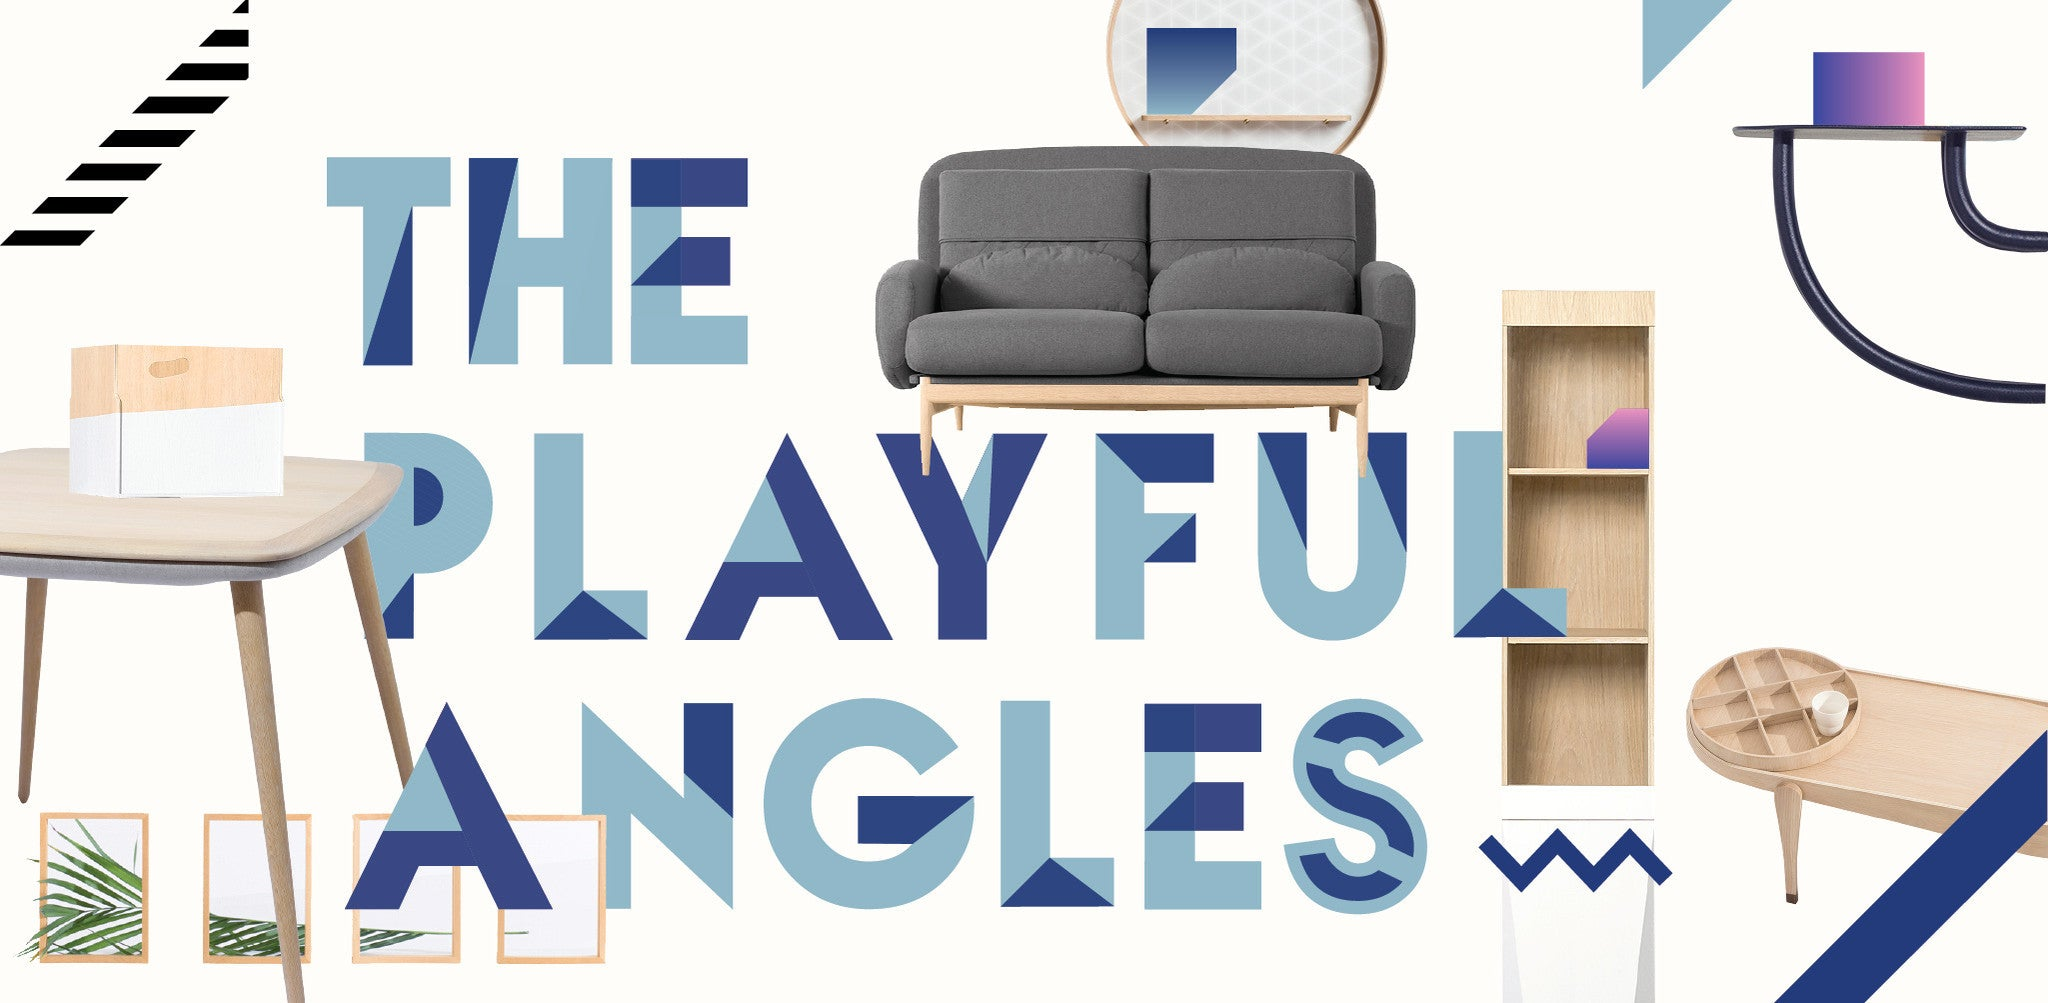 Playful Angles furniture collection by ziinlife